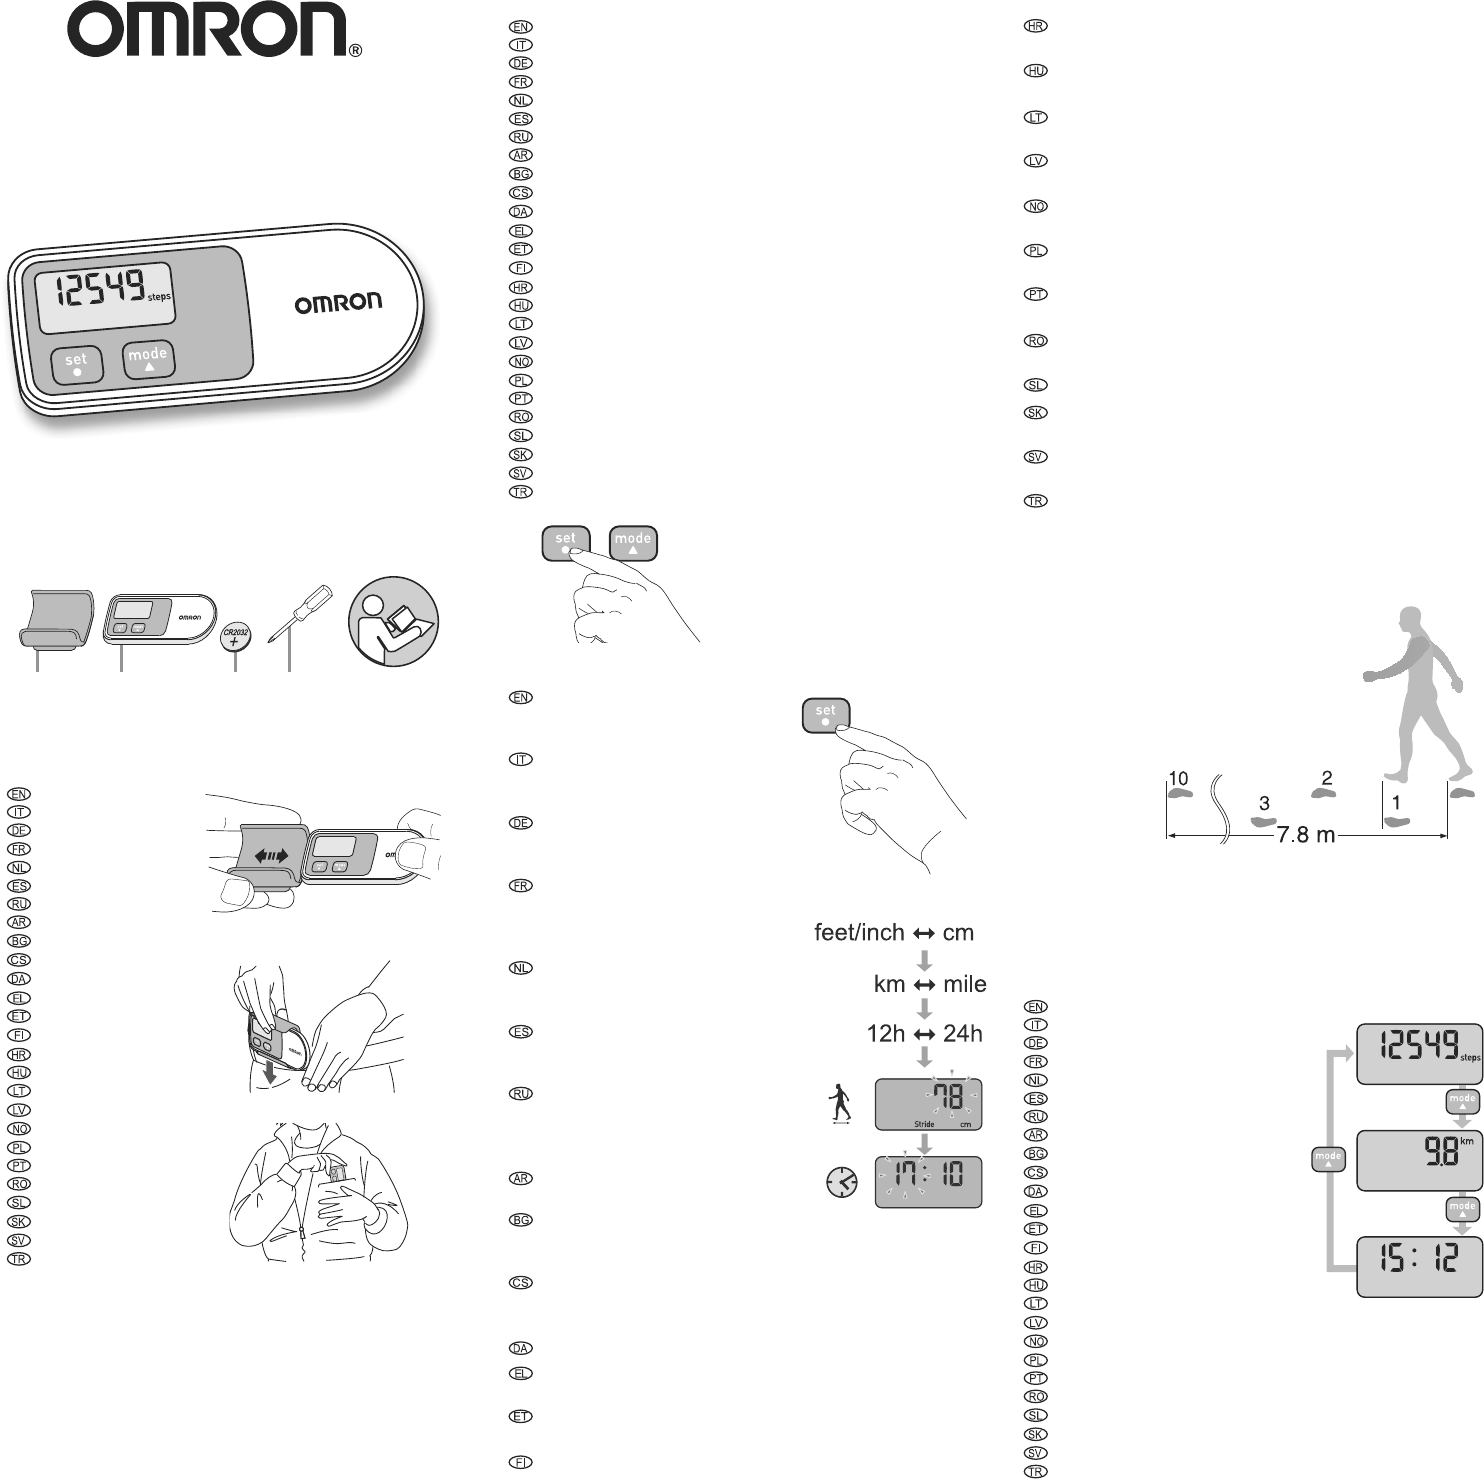 omron hj 320 e manual